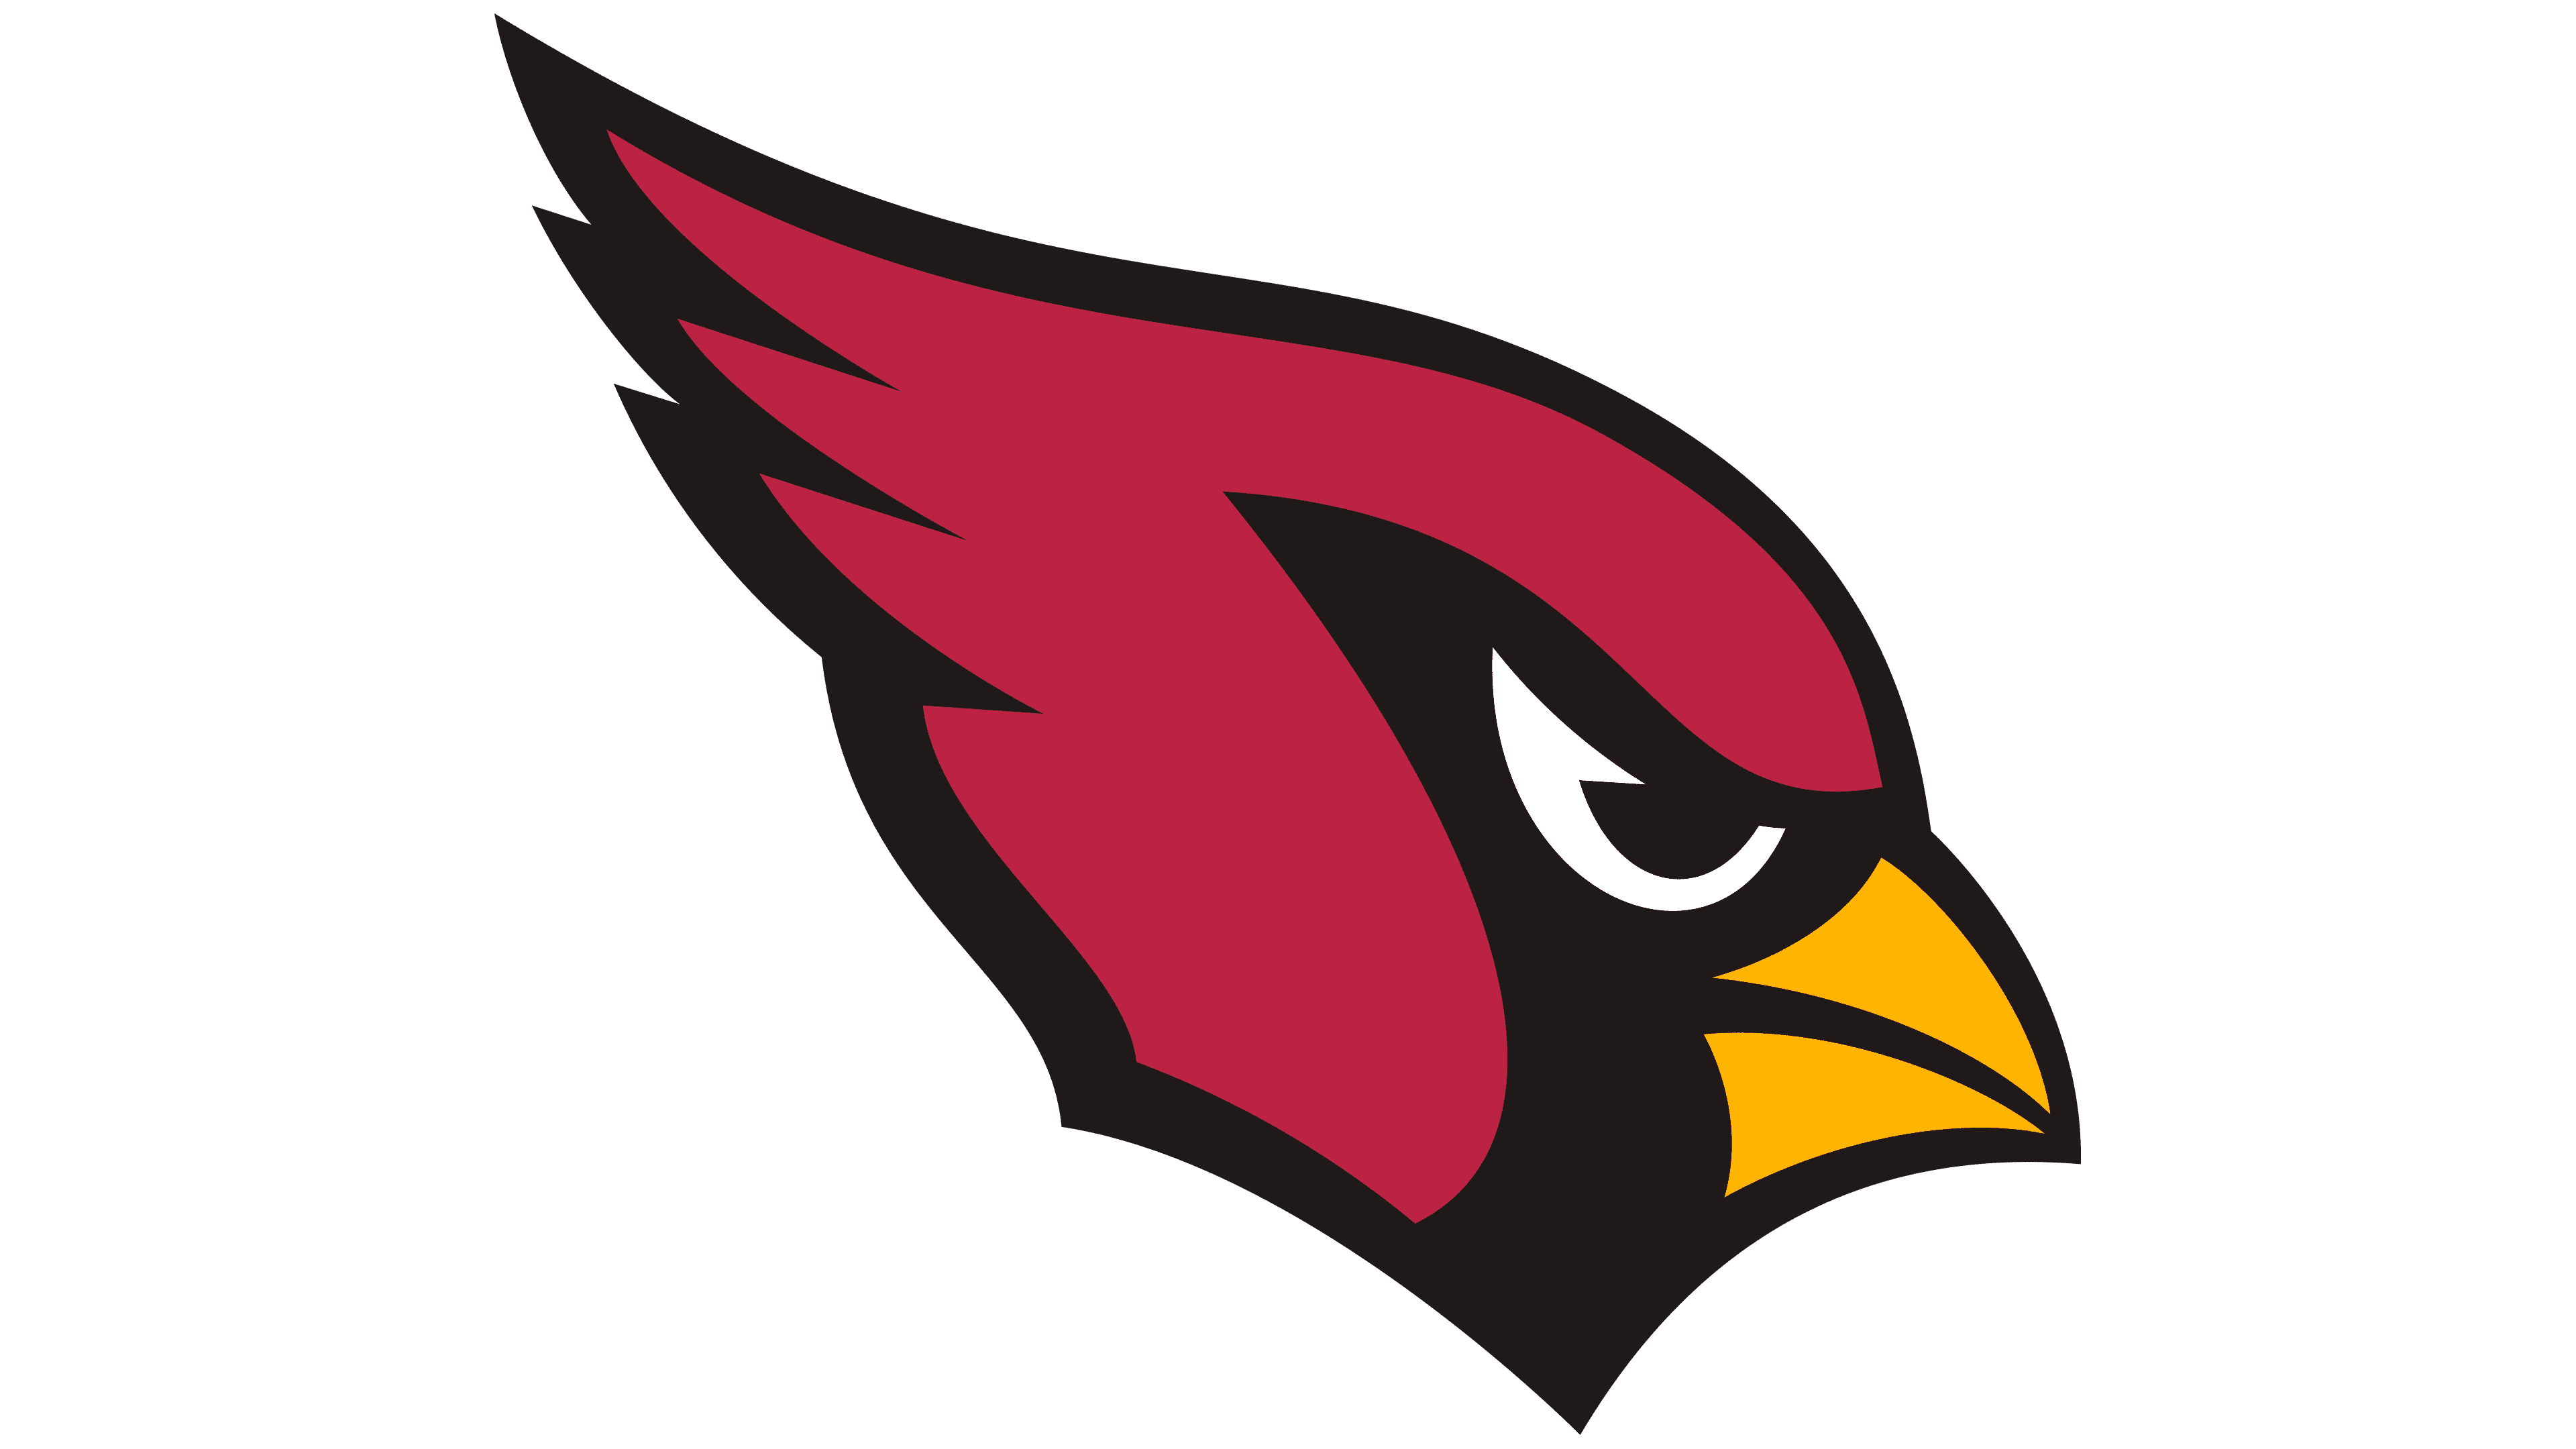 Arizona Cardinals Logo | The most famous brands and company logos in the  world